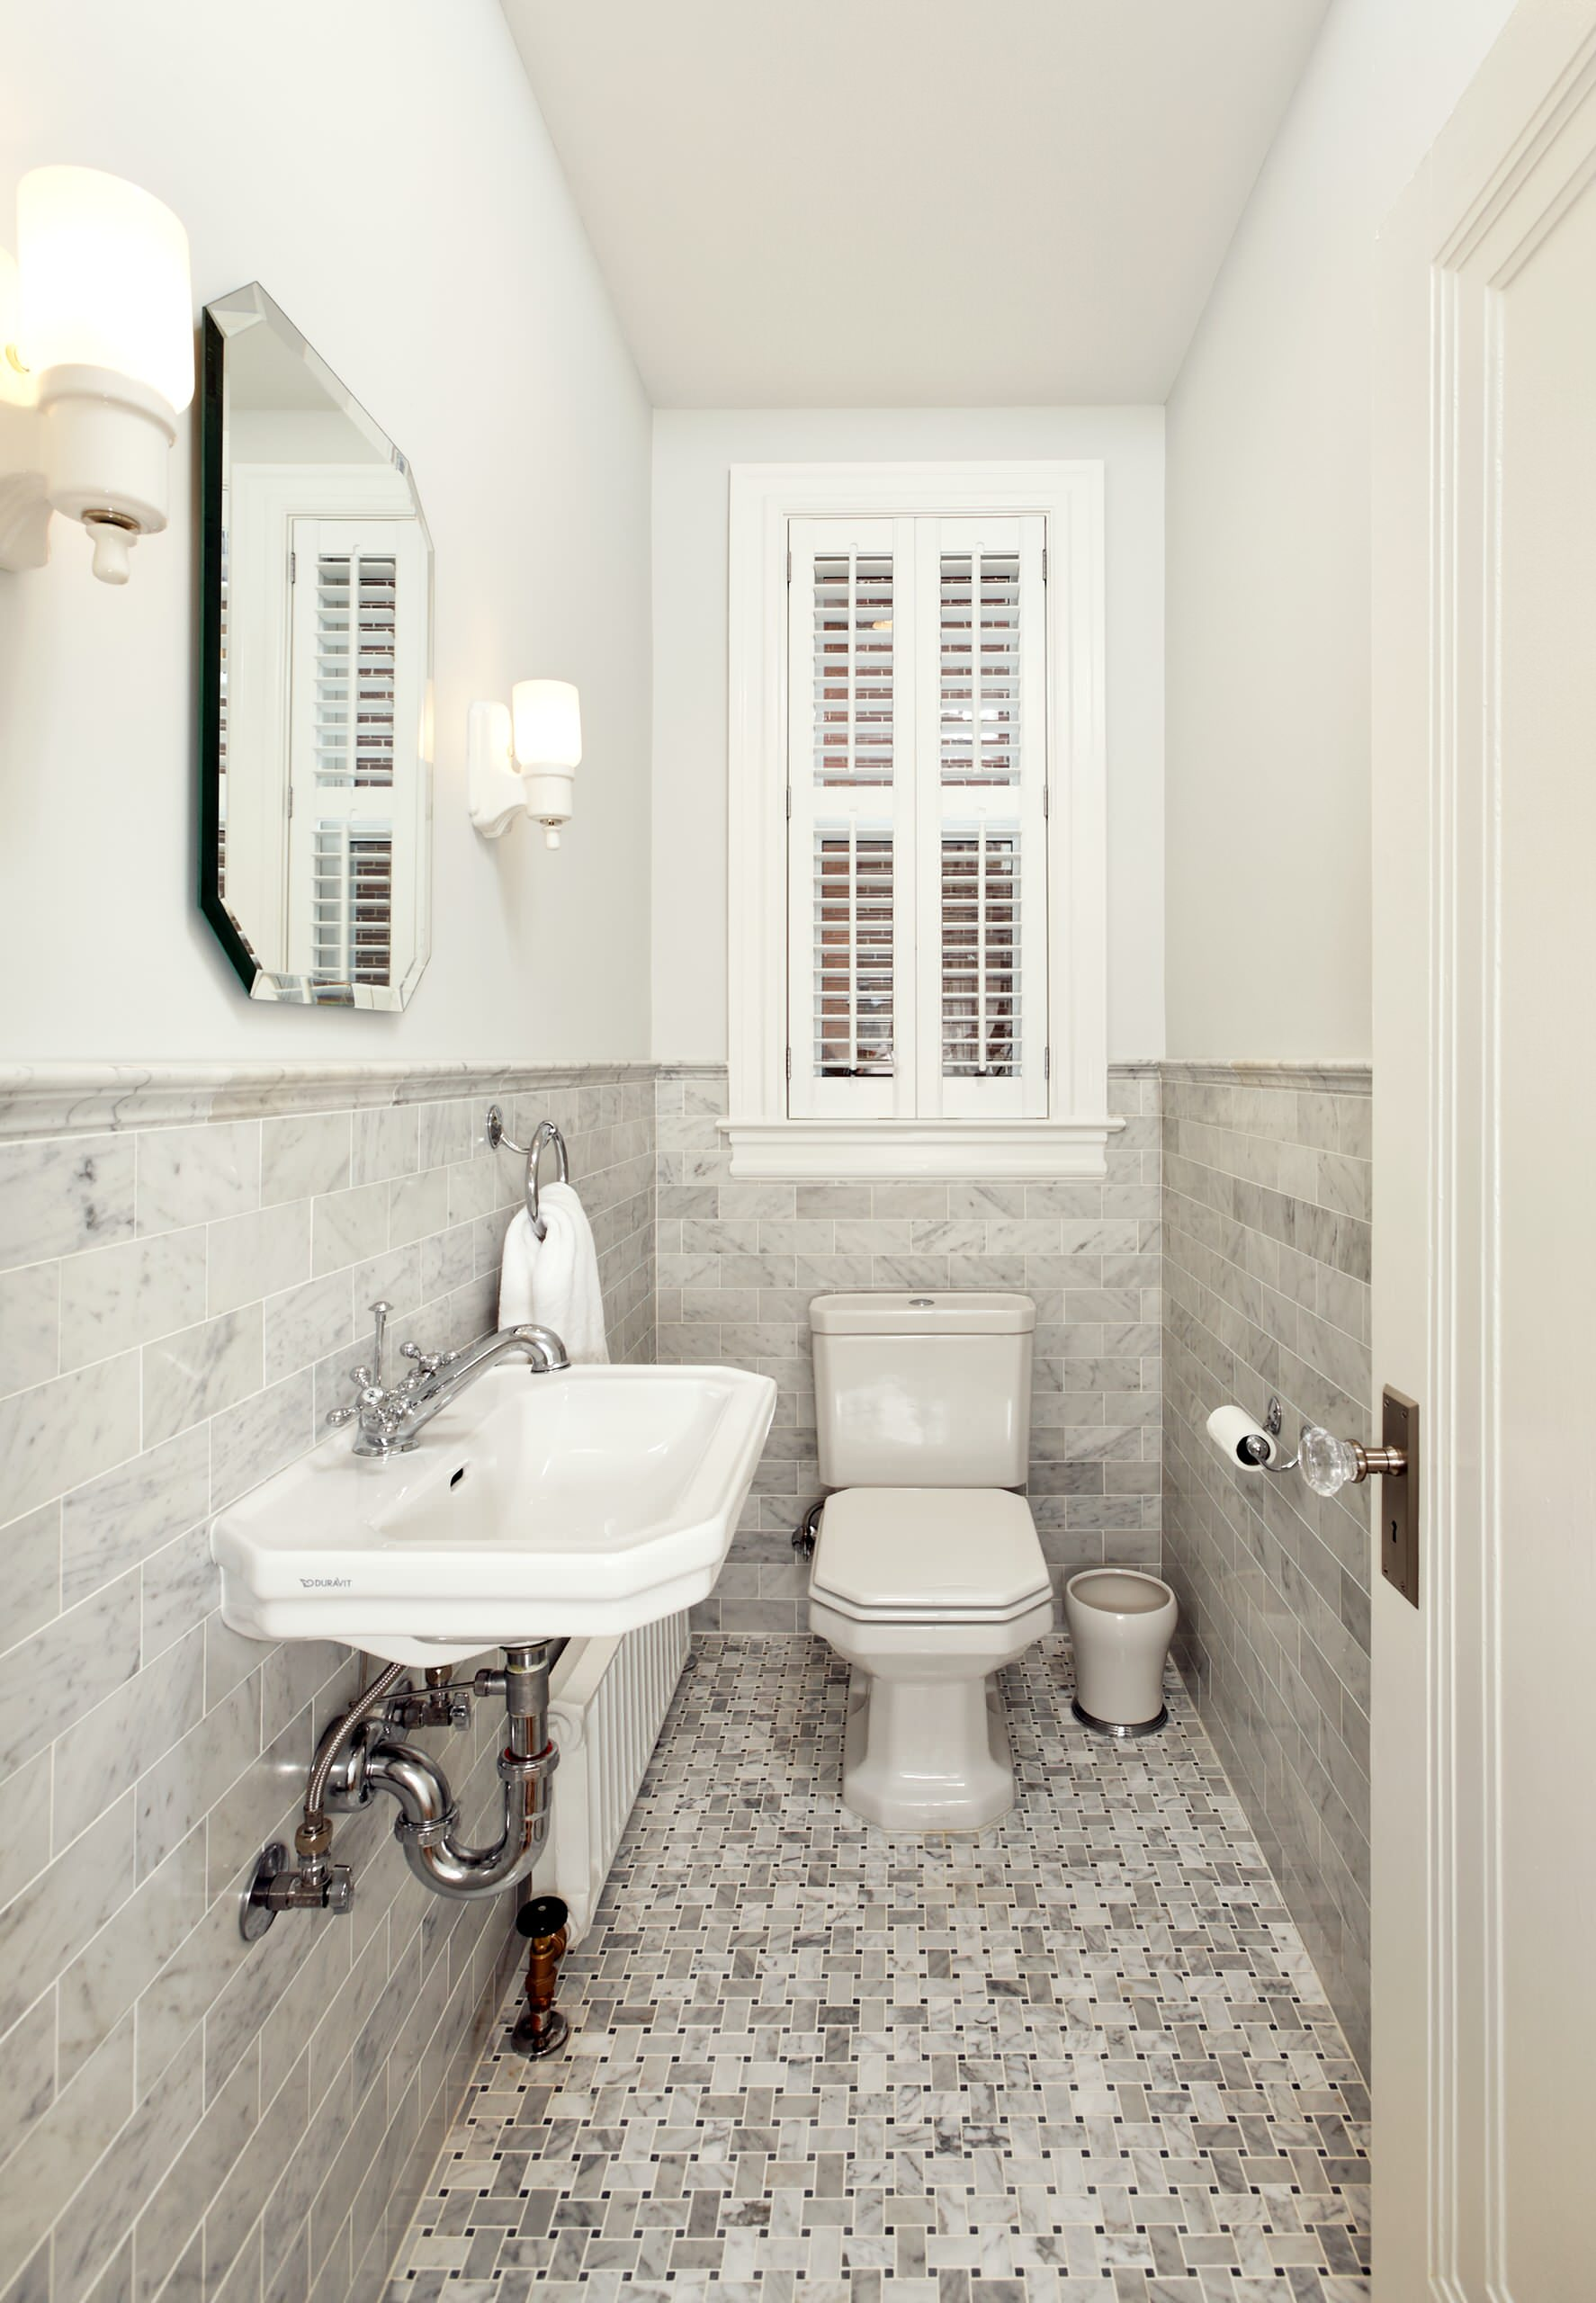 75 Beautiful Powder Room With A Wall Mount Sink Pictures Ideas April 2021 Houzz